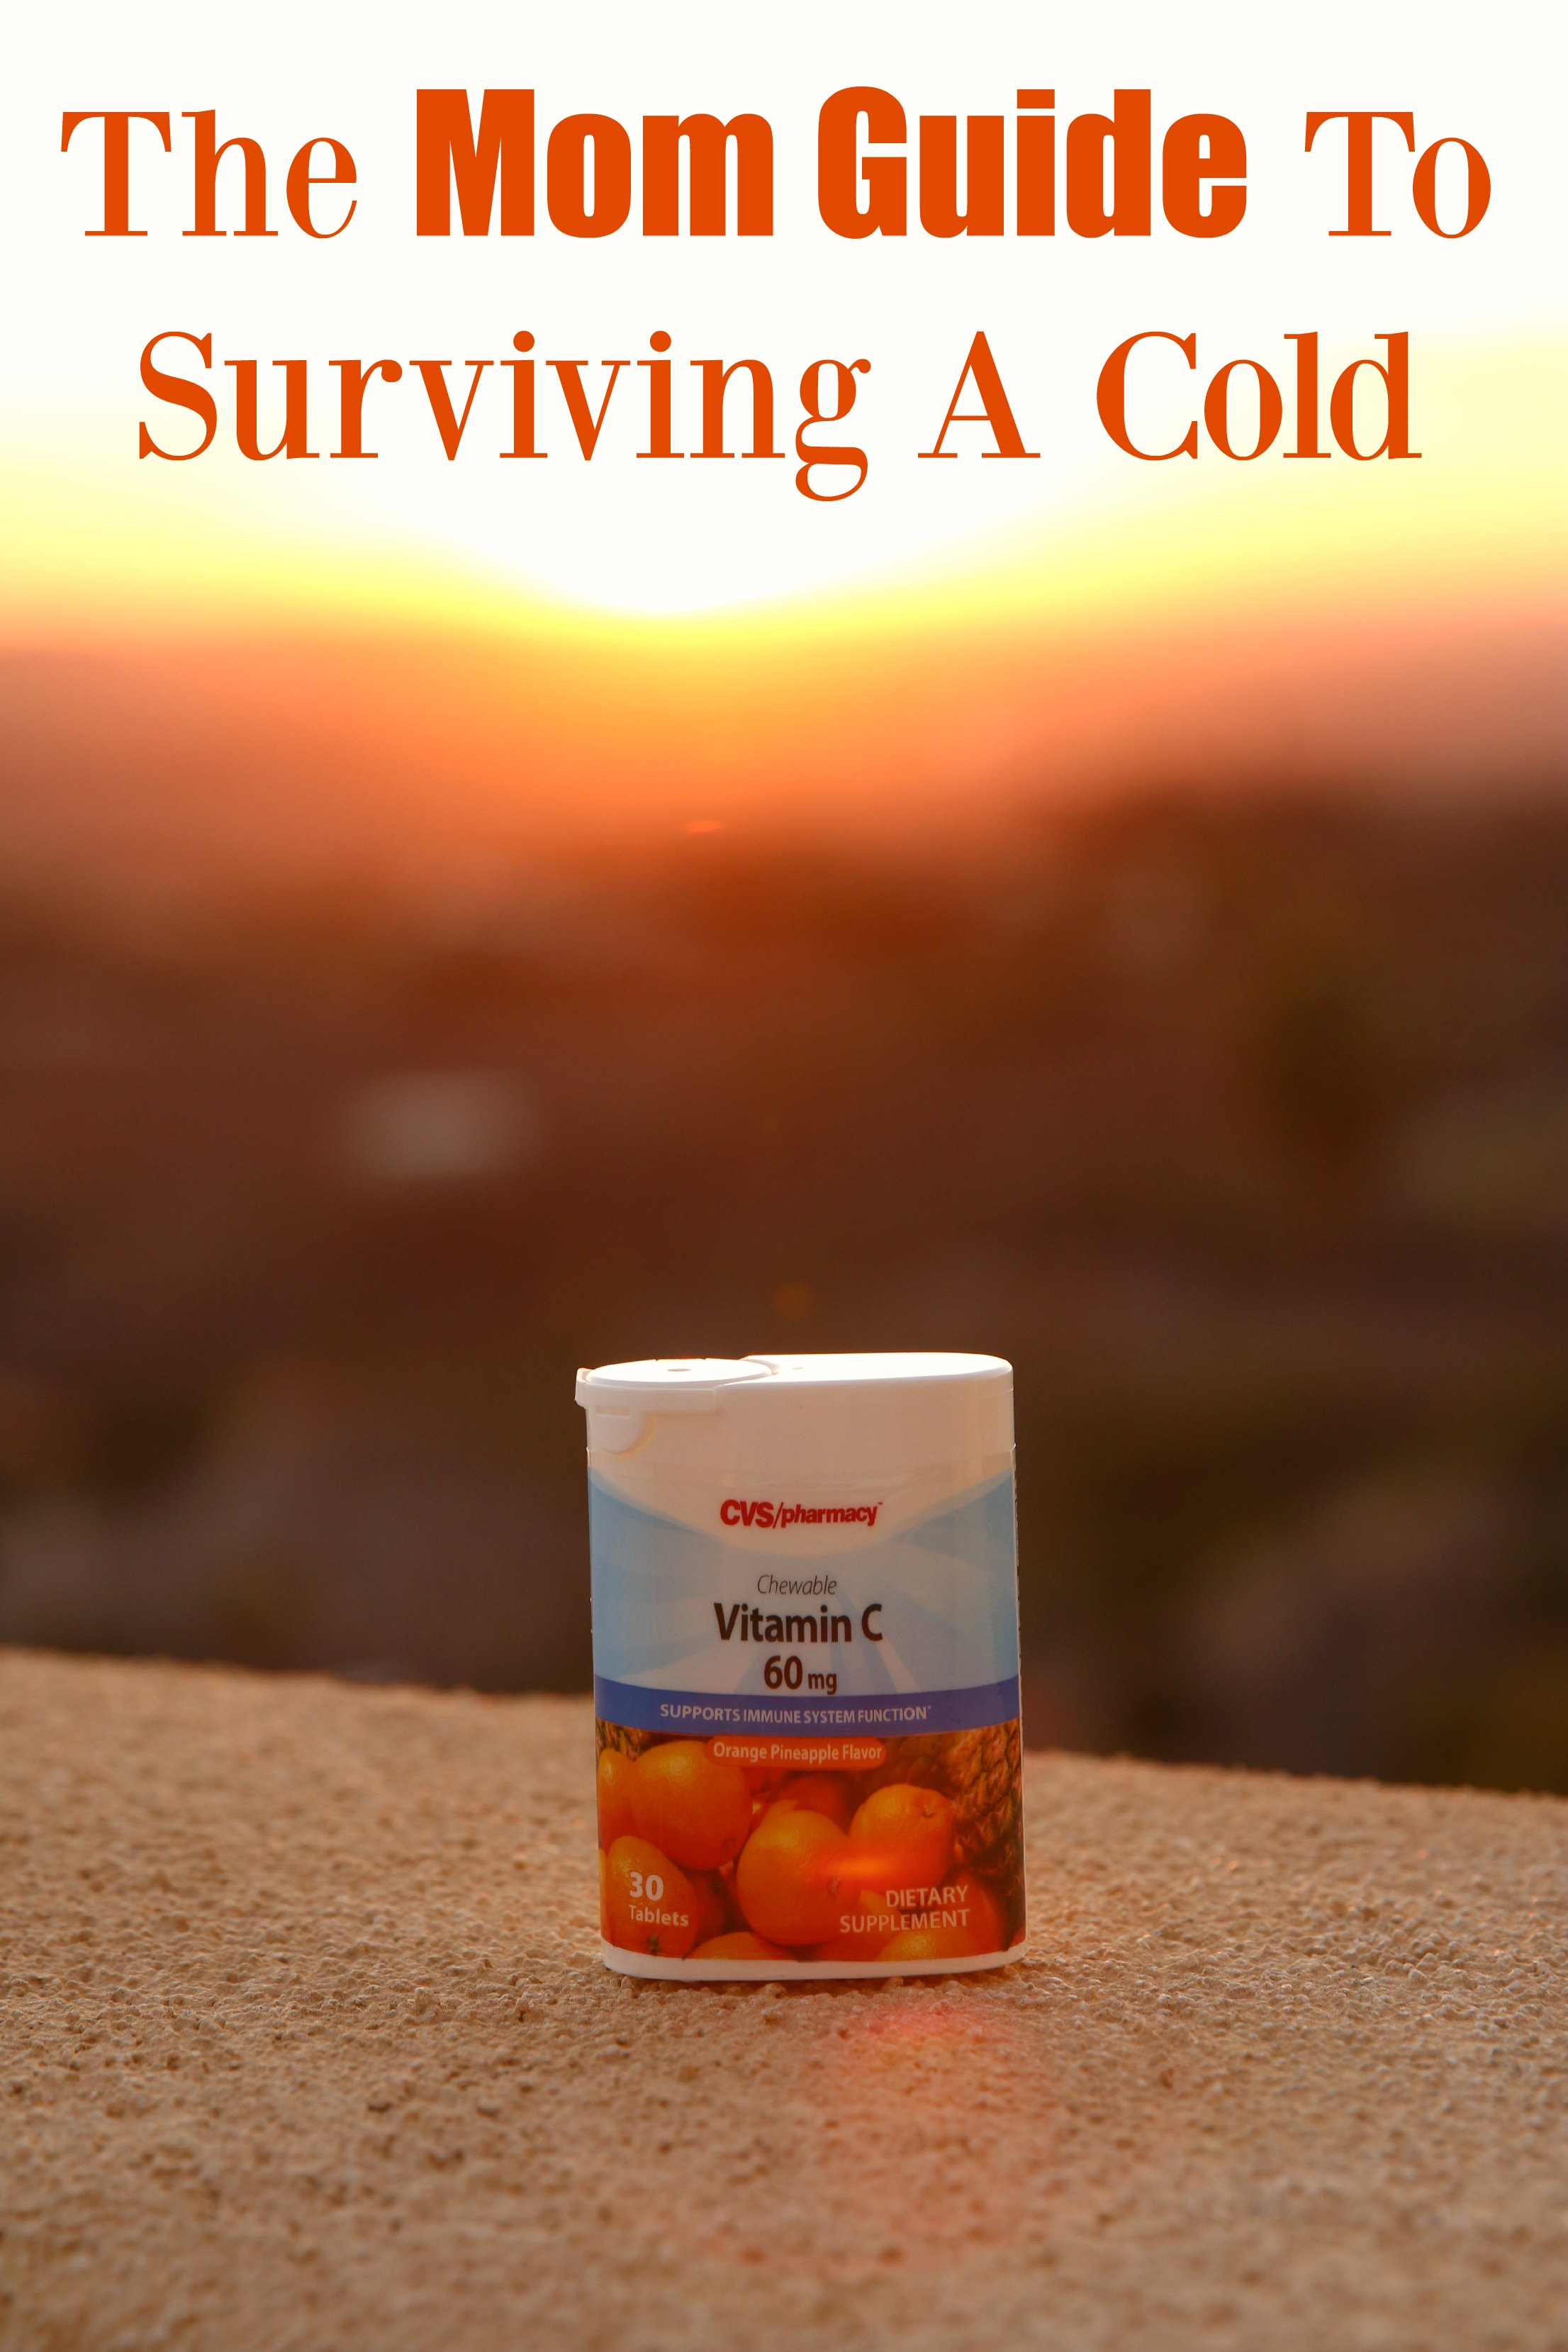 The Mom Guide To Surviving A Cold